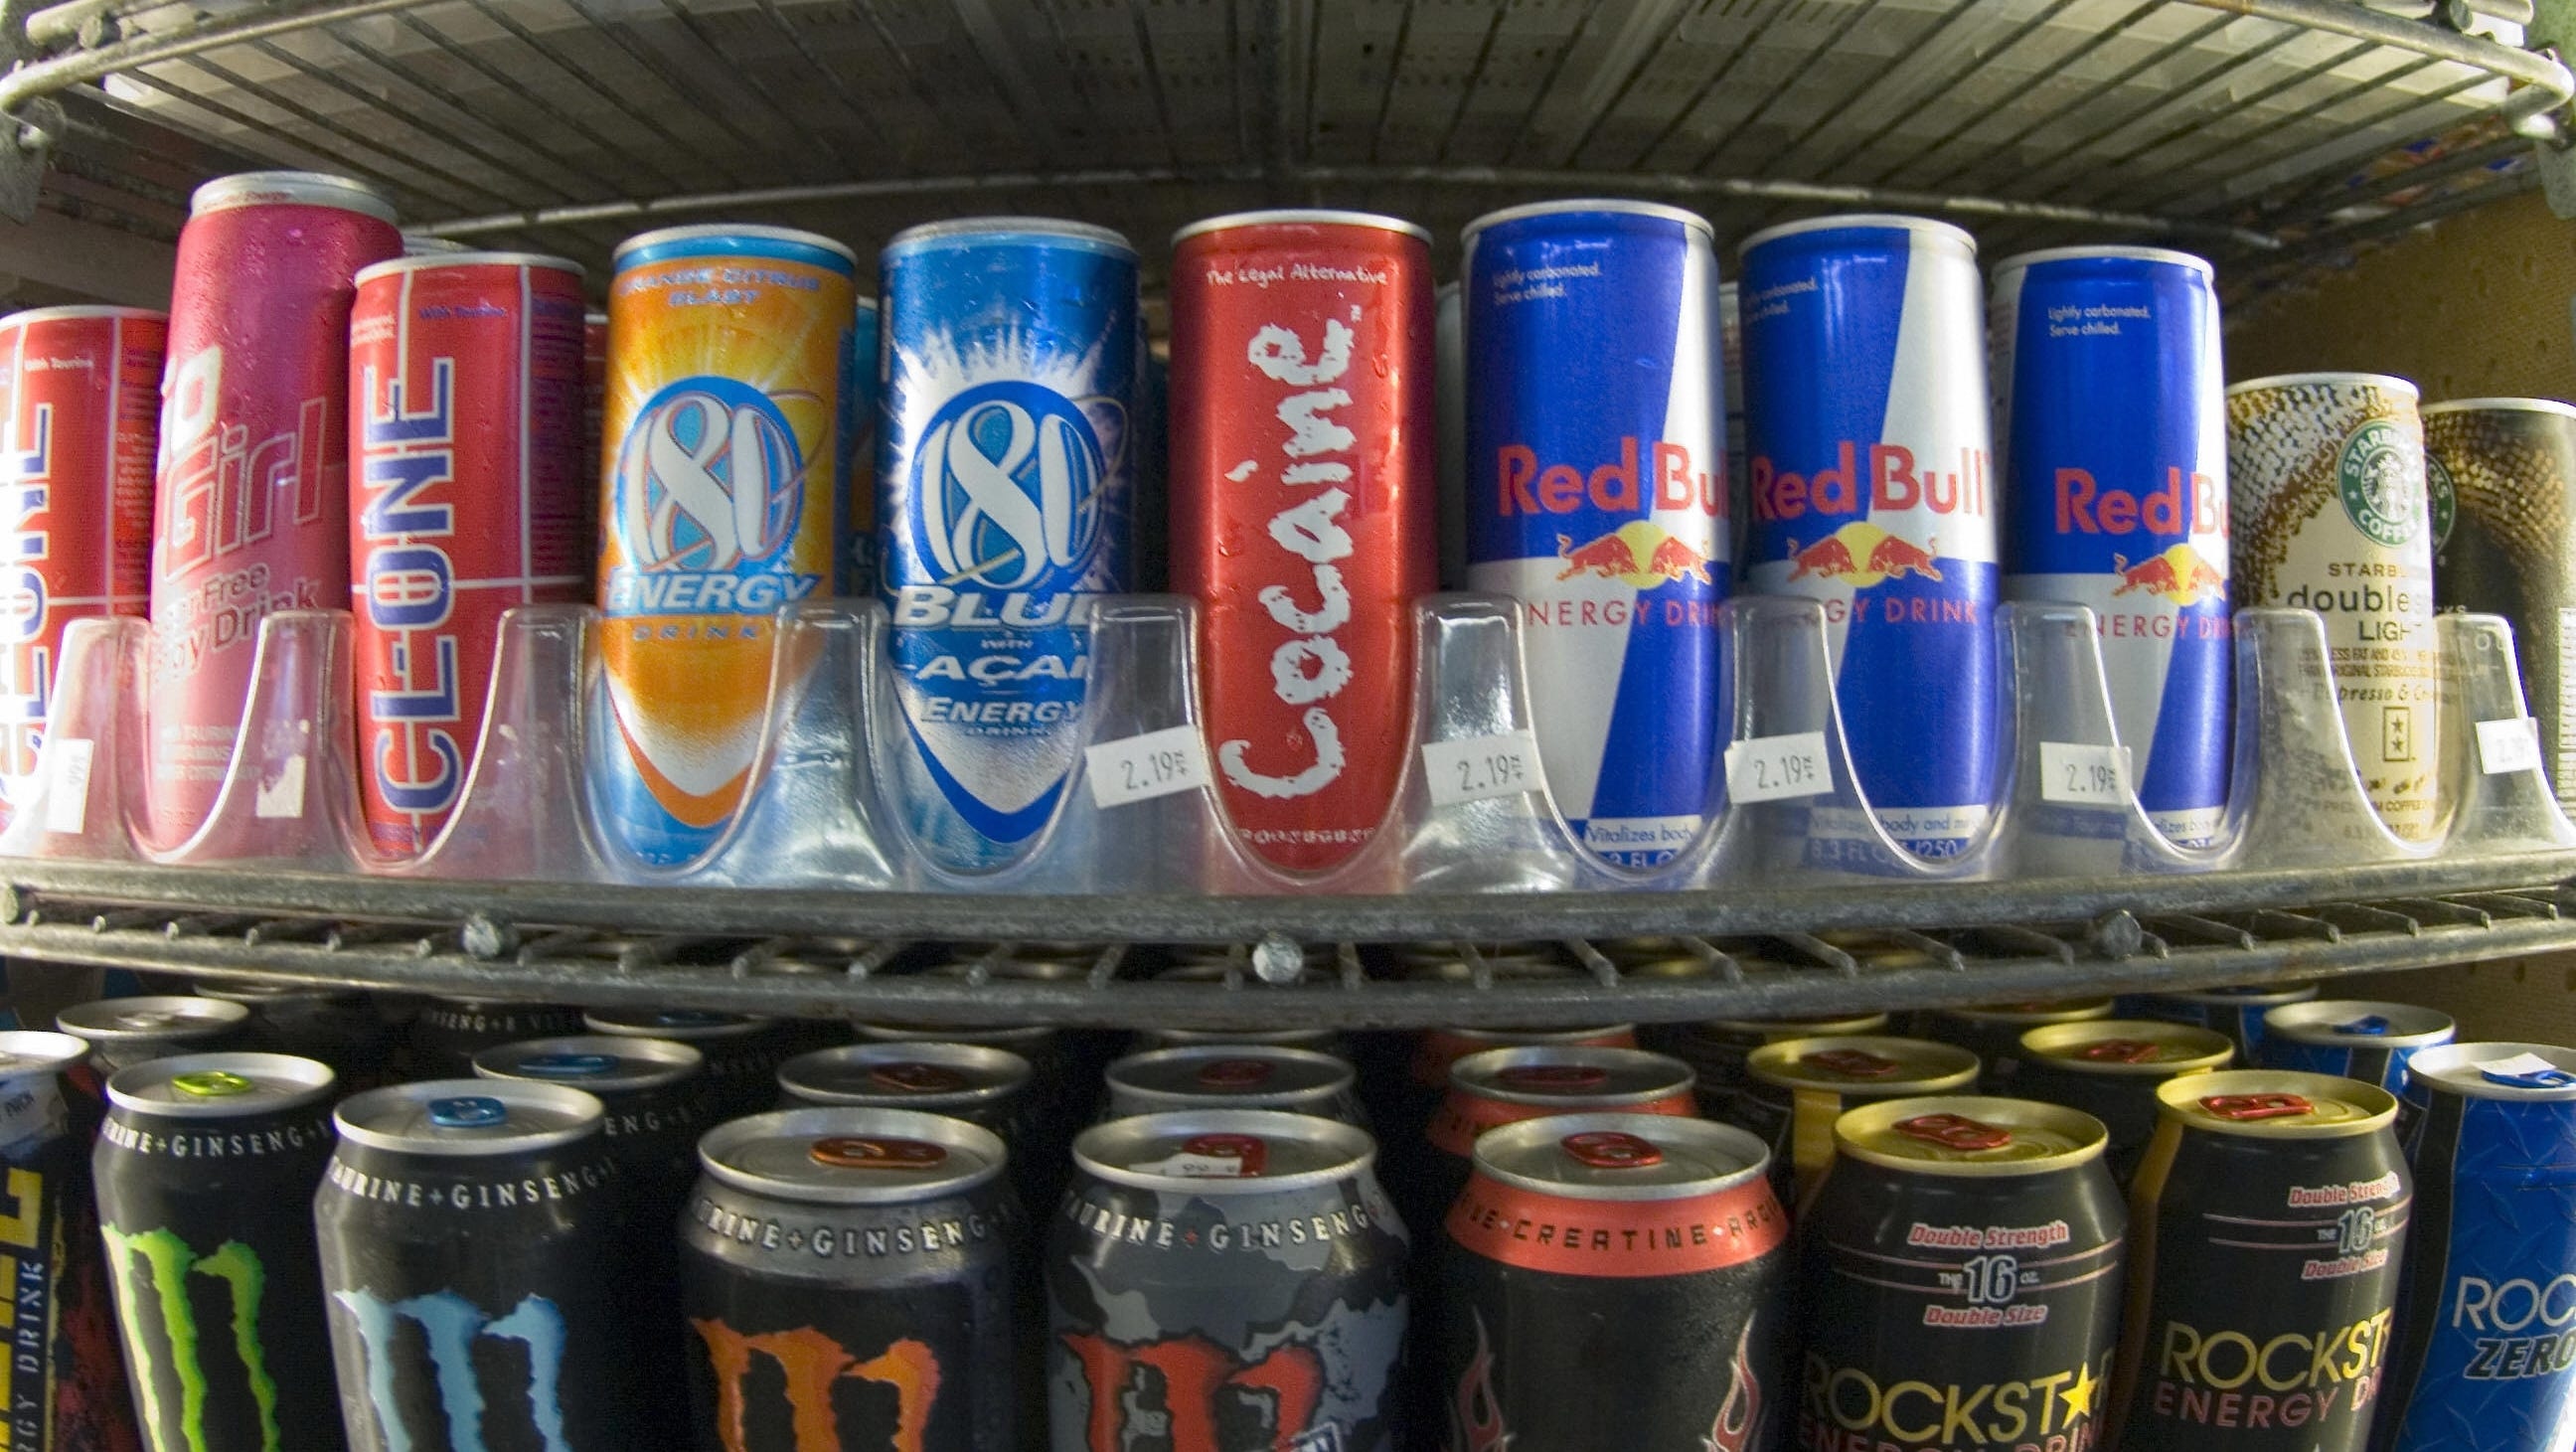 Energy Drink-Related ER Visits Doubled Since 2007